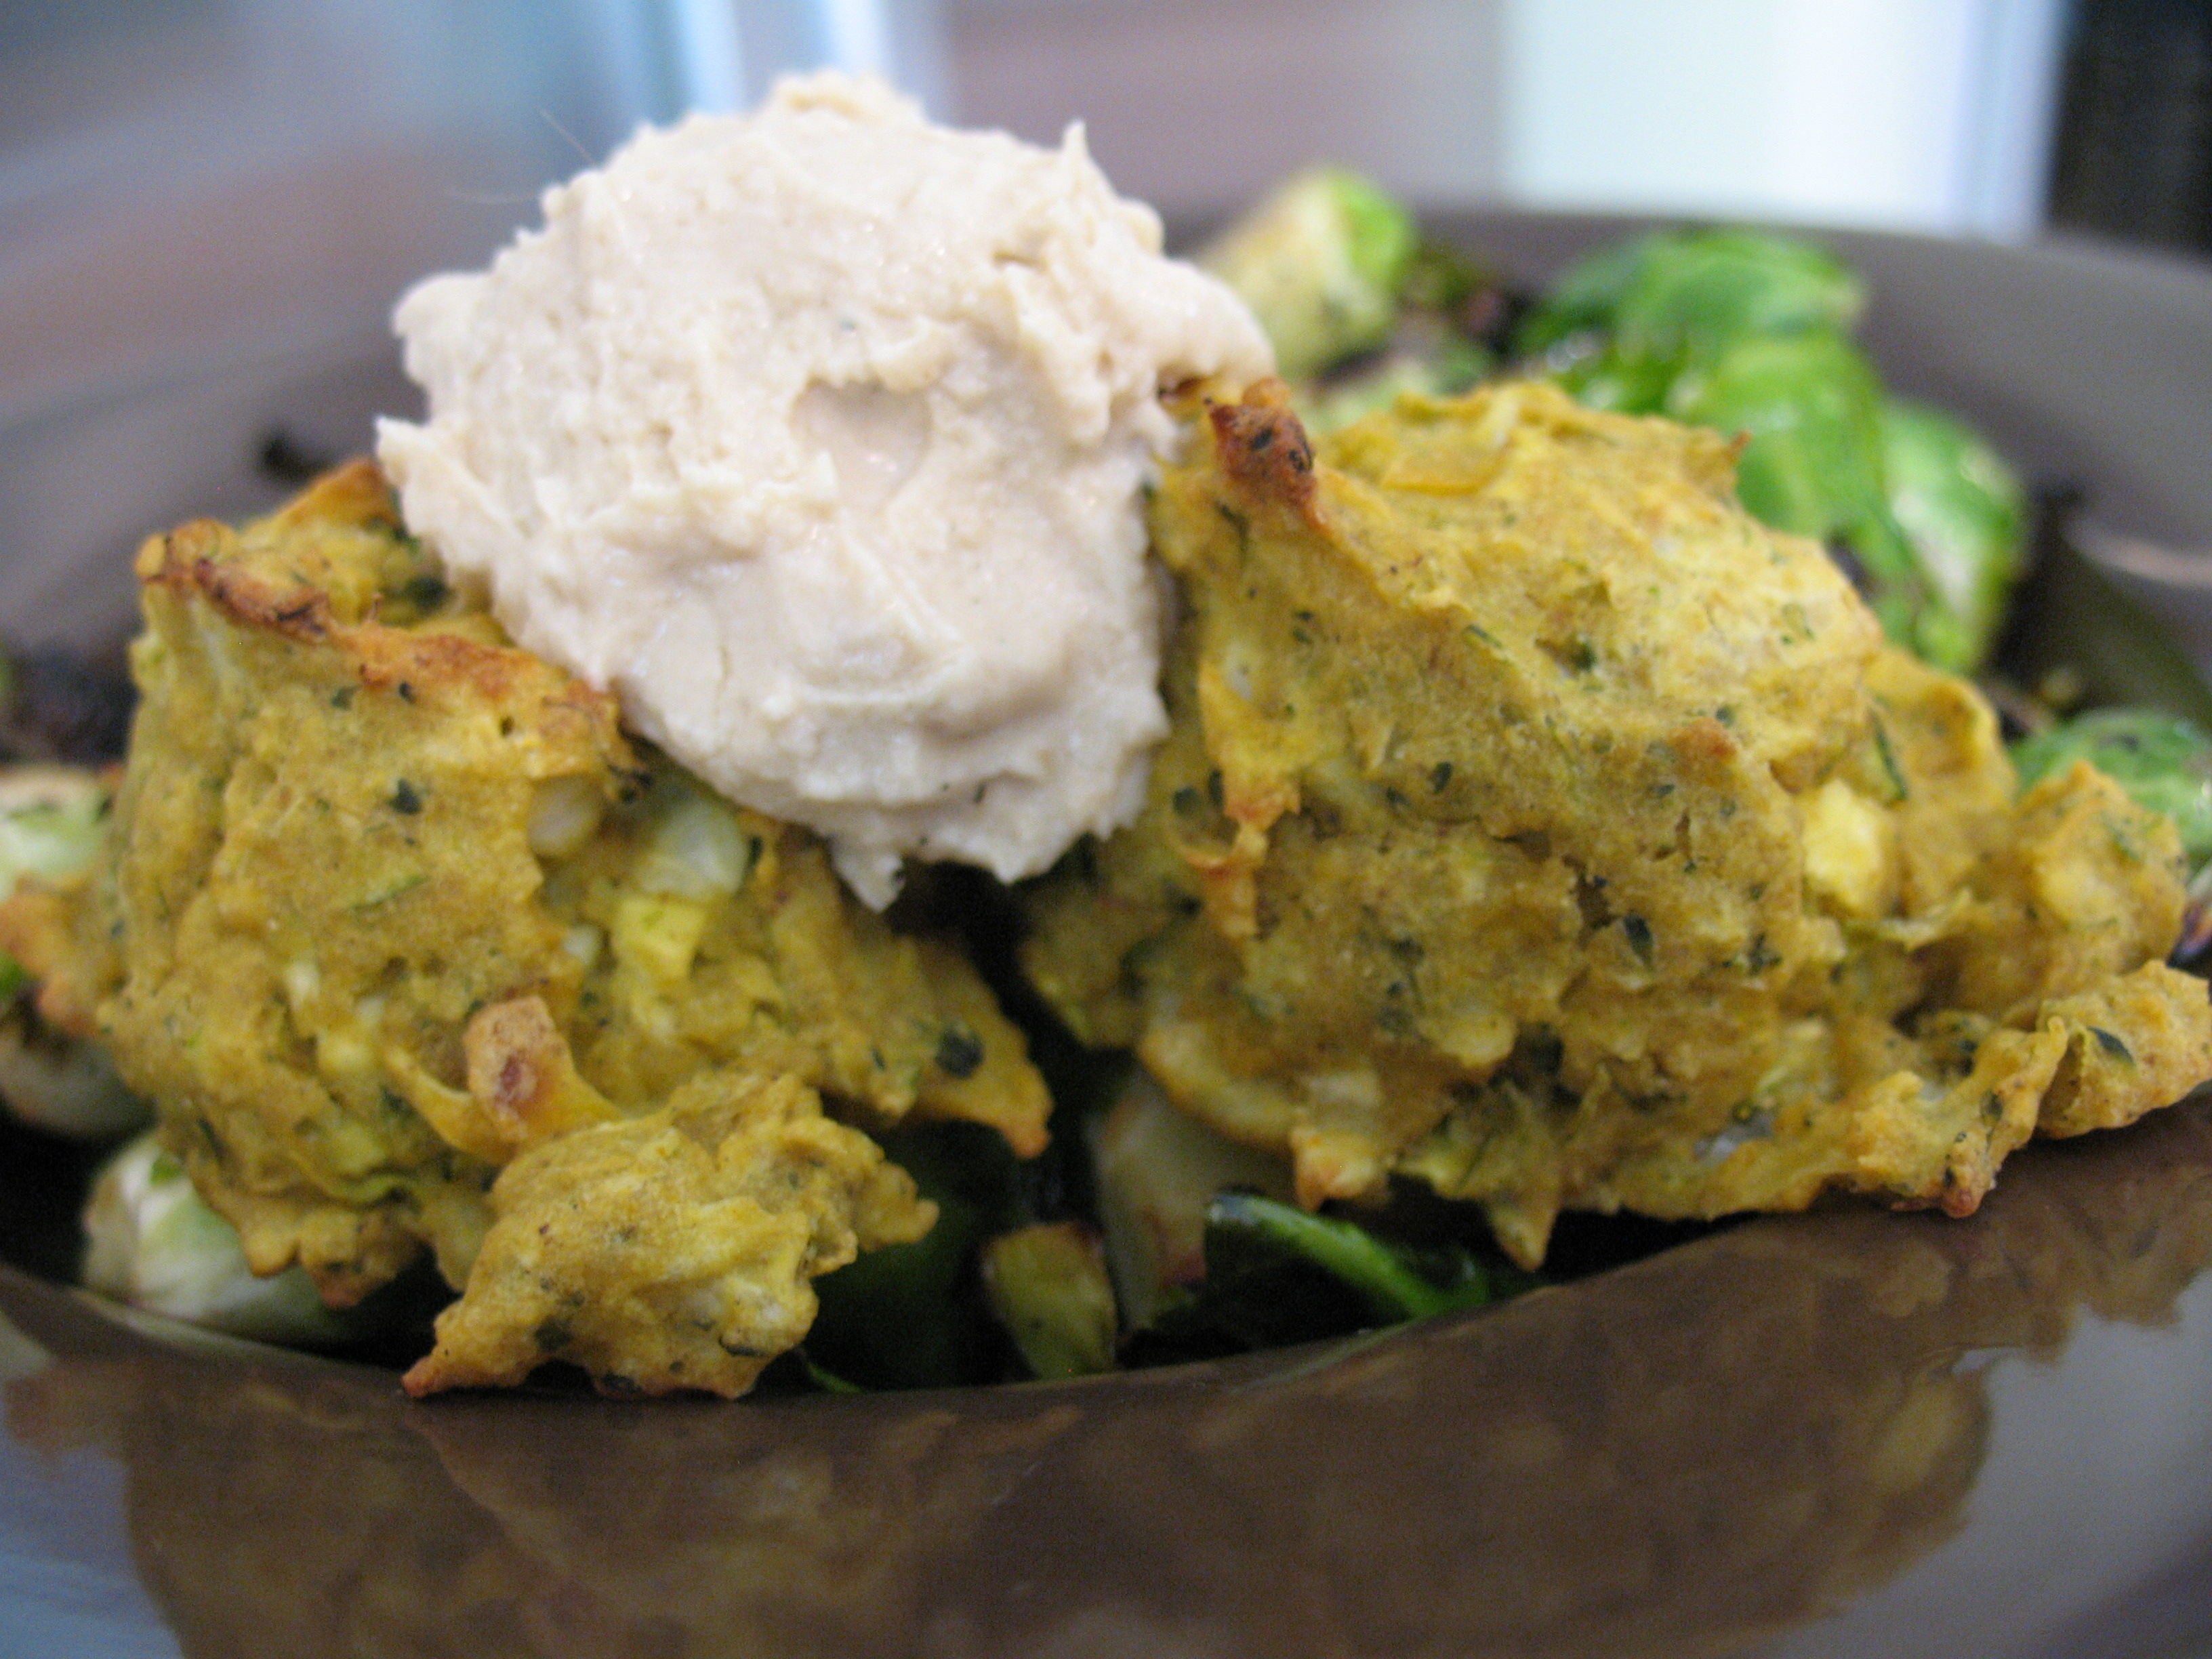 Tahini Falafels with hummus.